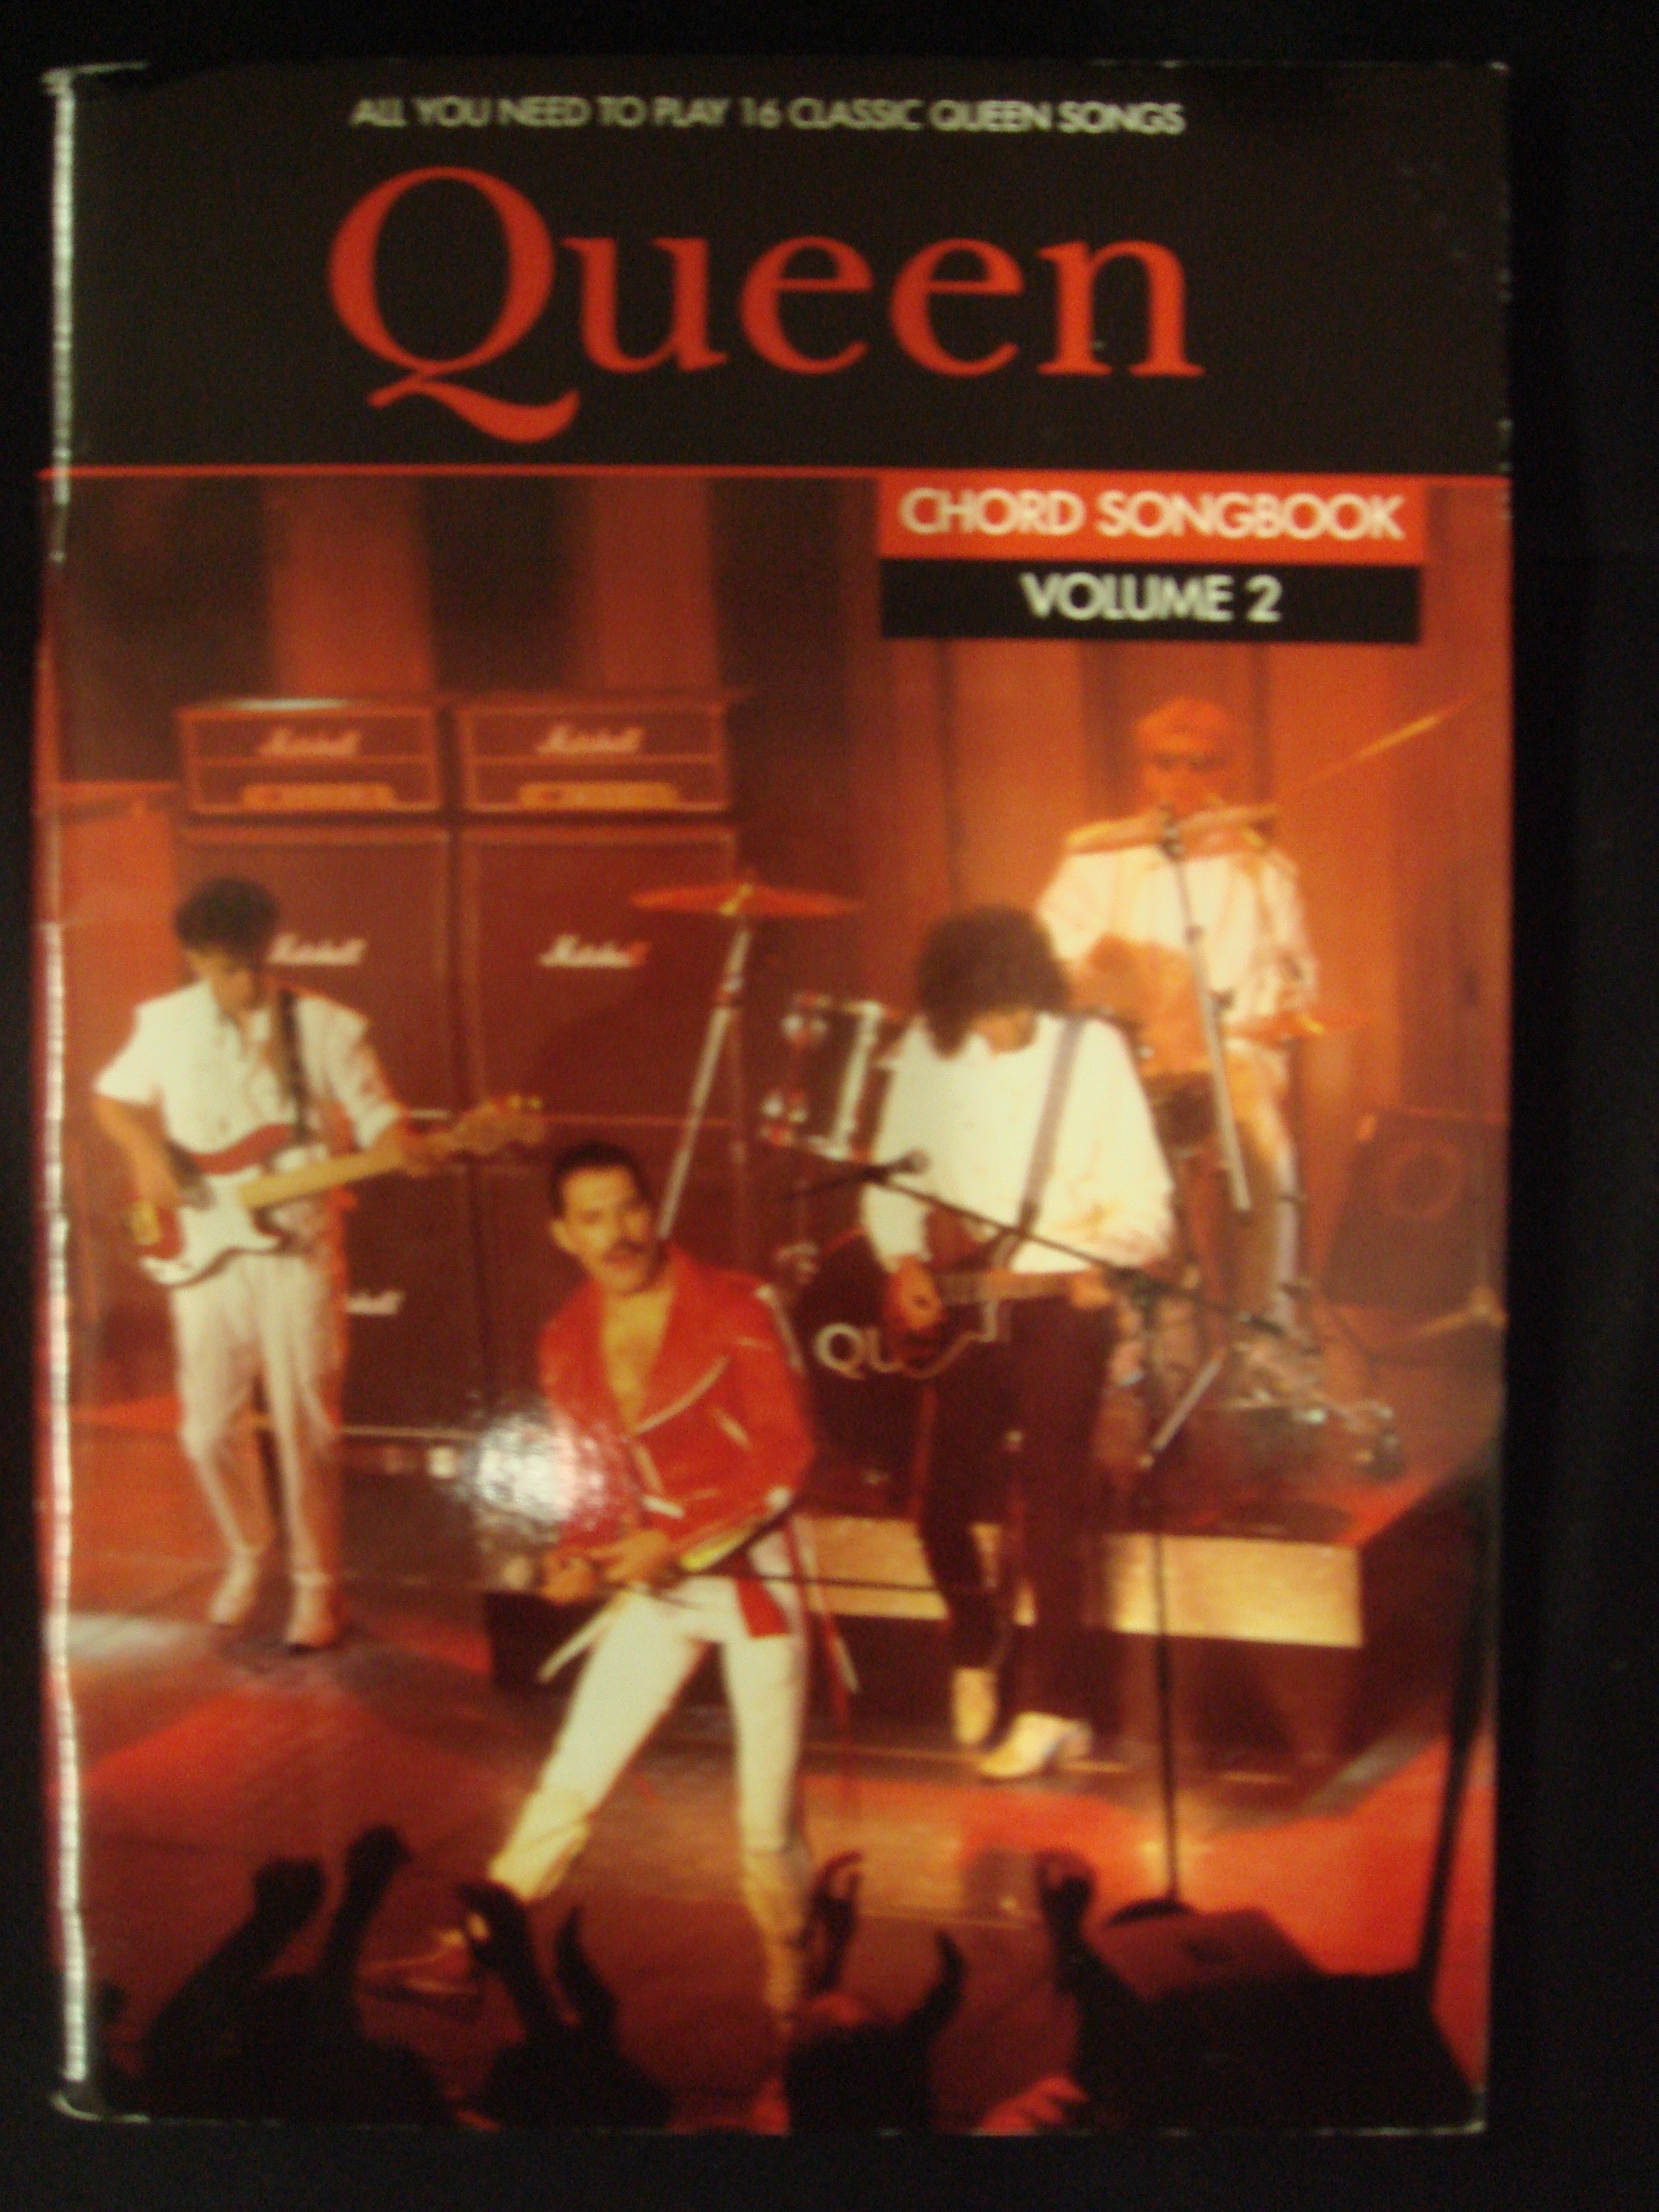 Queen Chord Songbook Volume 2 Complete Classics Songs Lyrics Guitar Chords S148